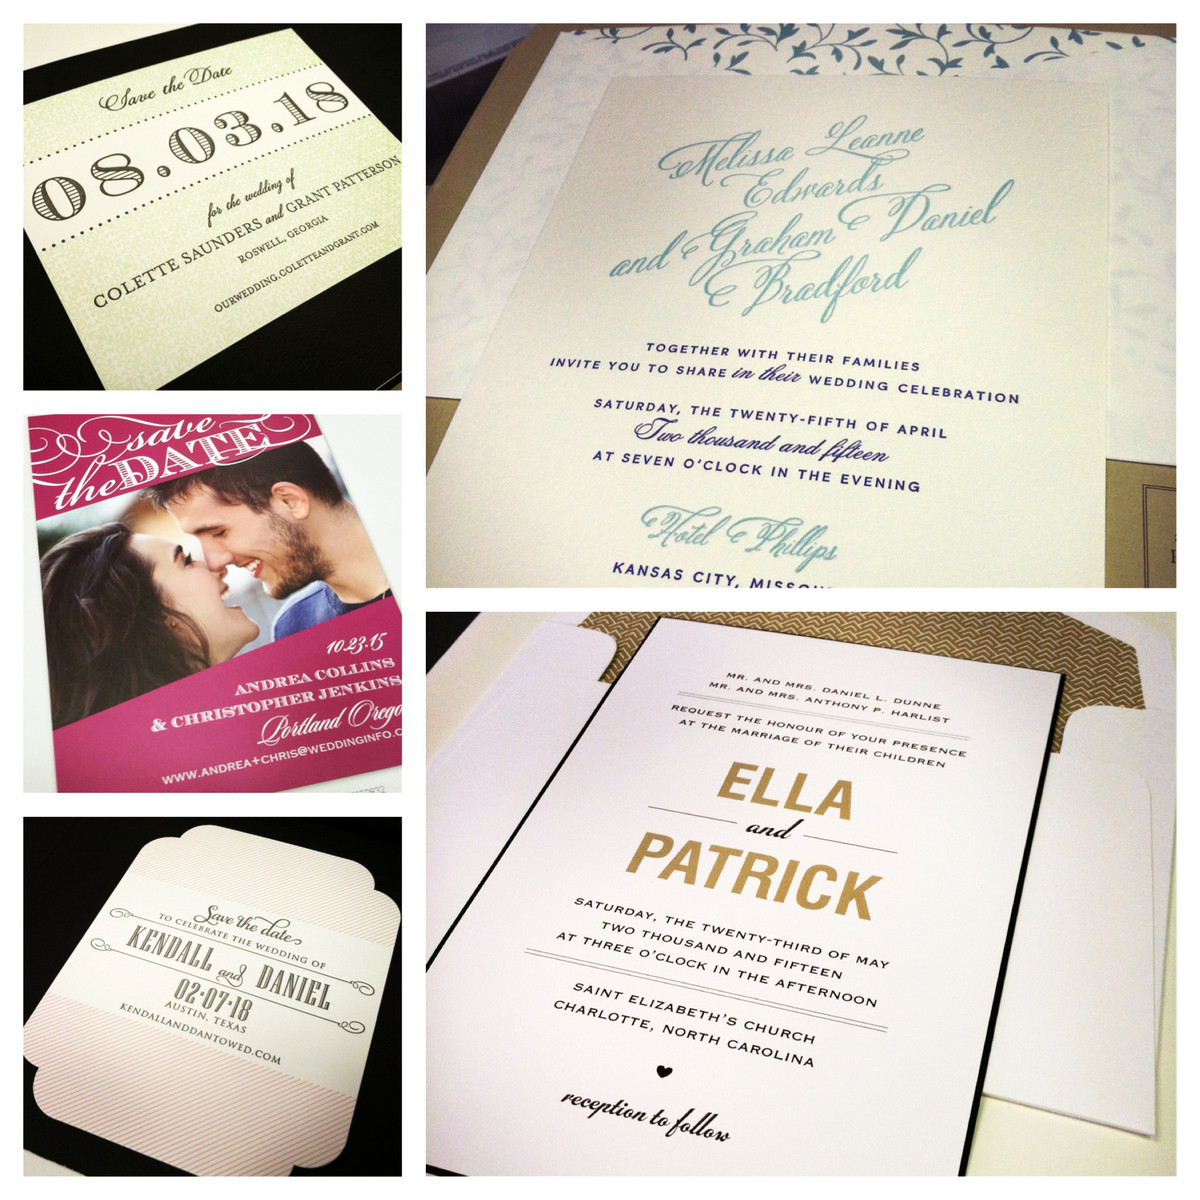 Chicago Wedding Invitations - Reviews for Invitations